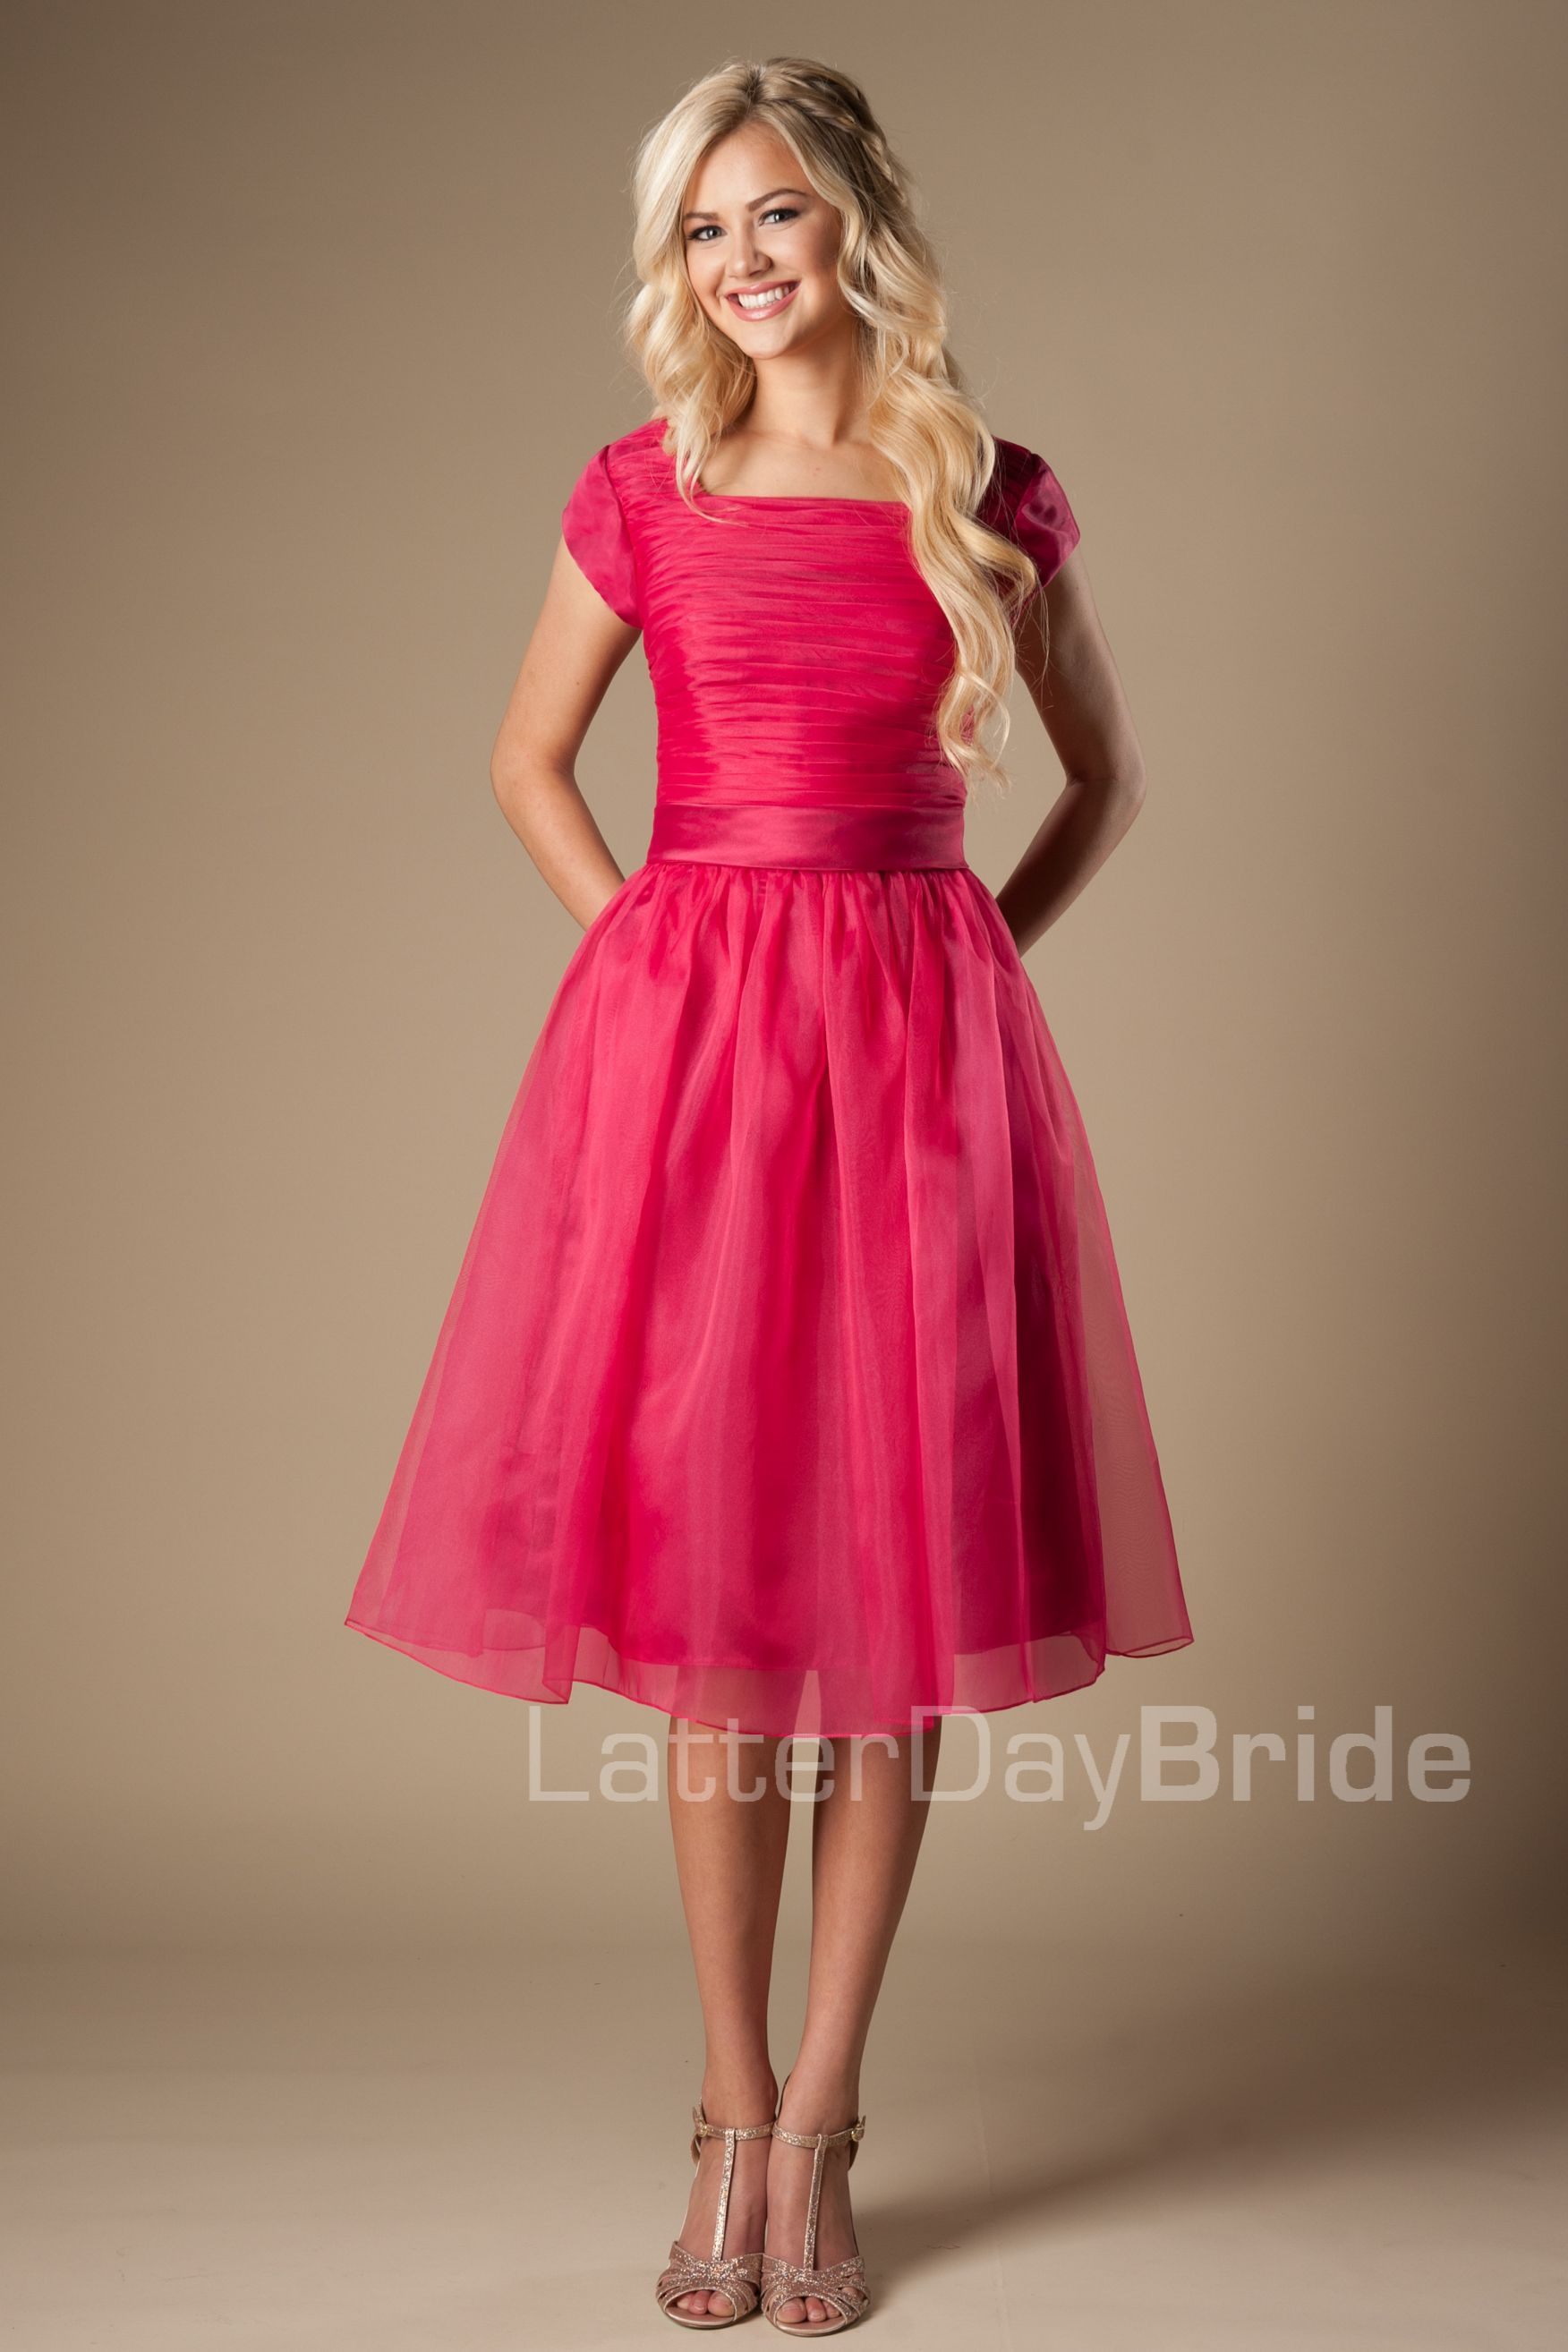 Latter Day Bride modest prom dress. pink, knee,length